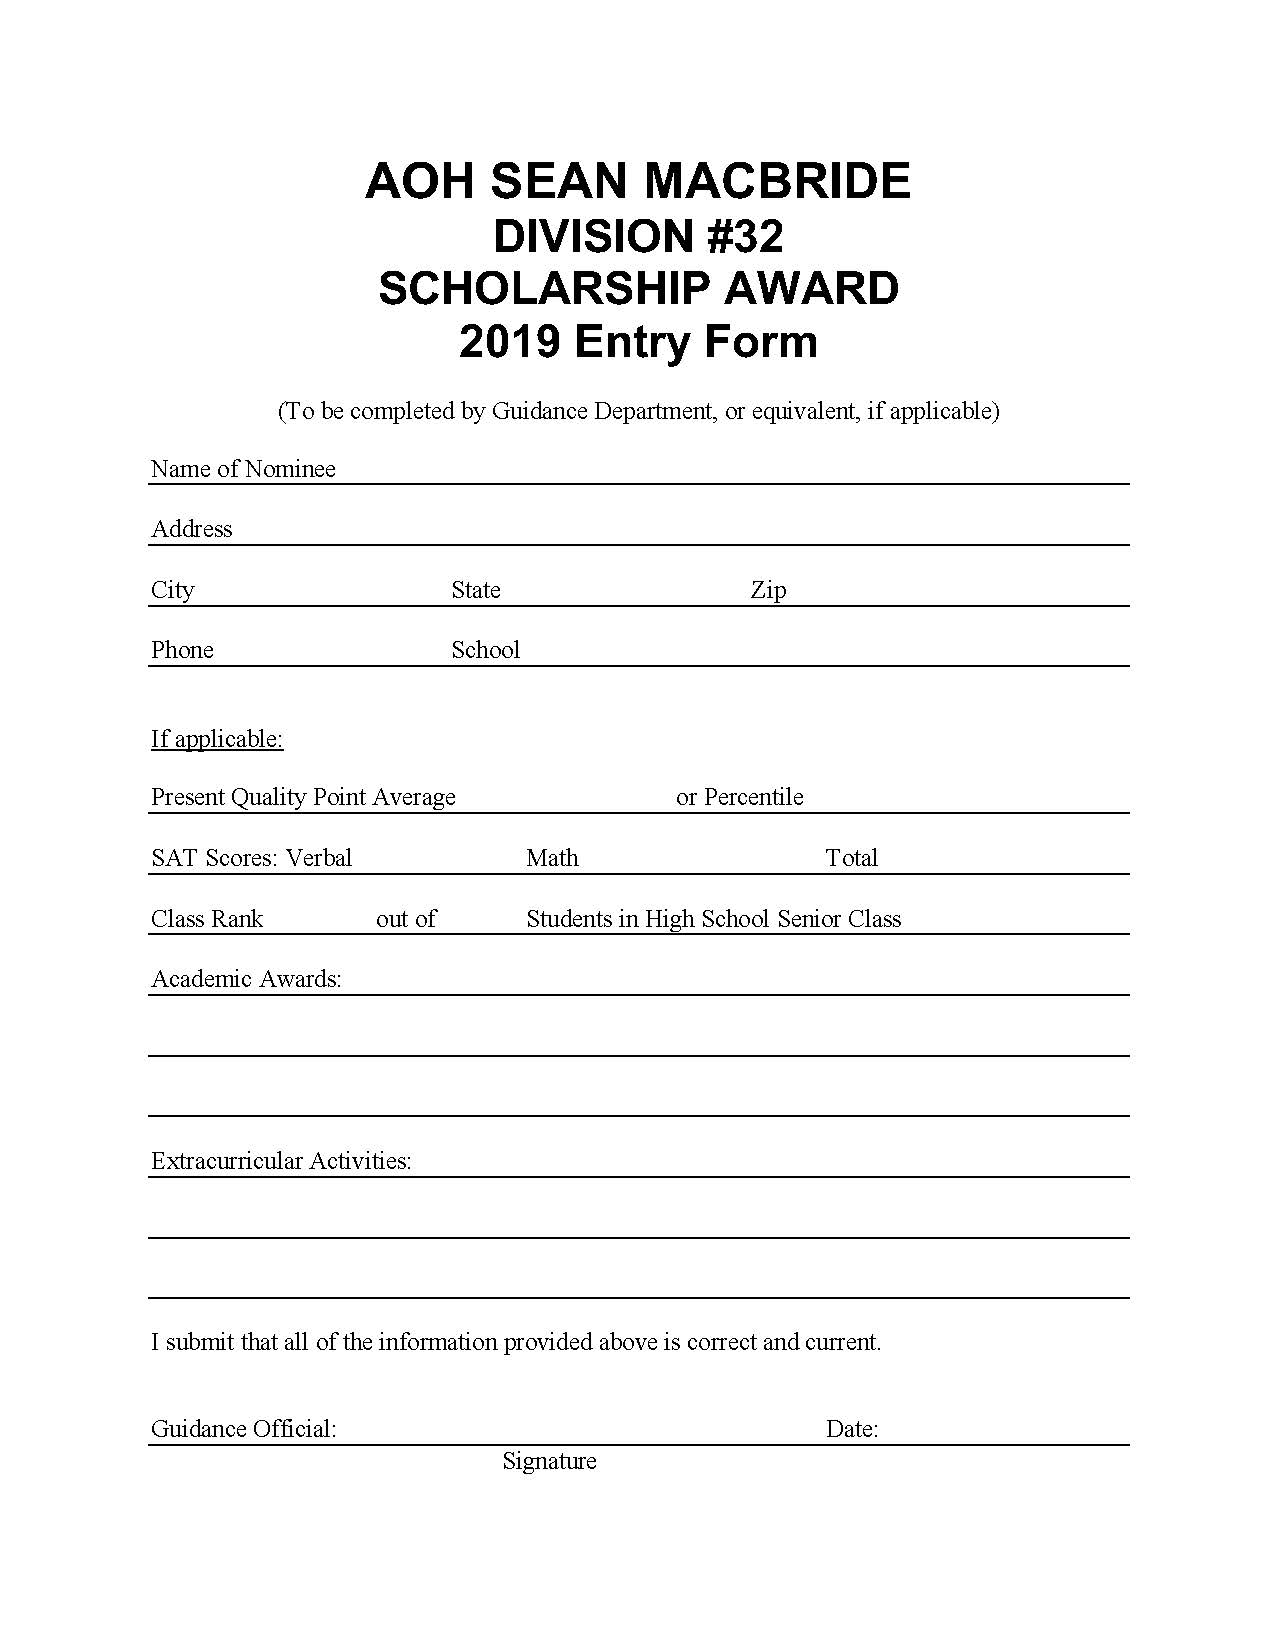 Scholarship Entry Form_2019.jpg